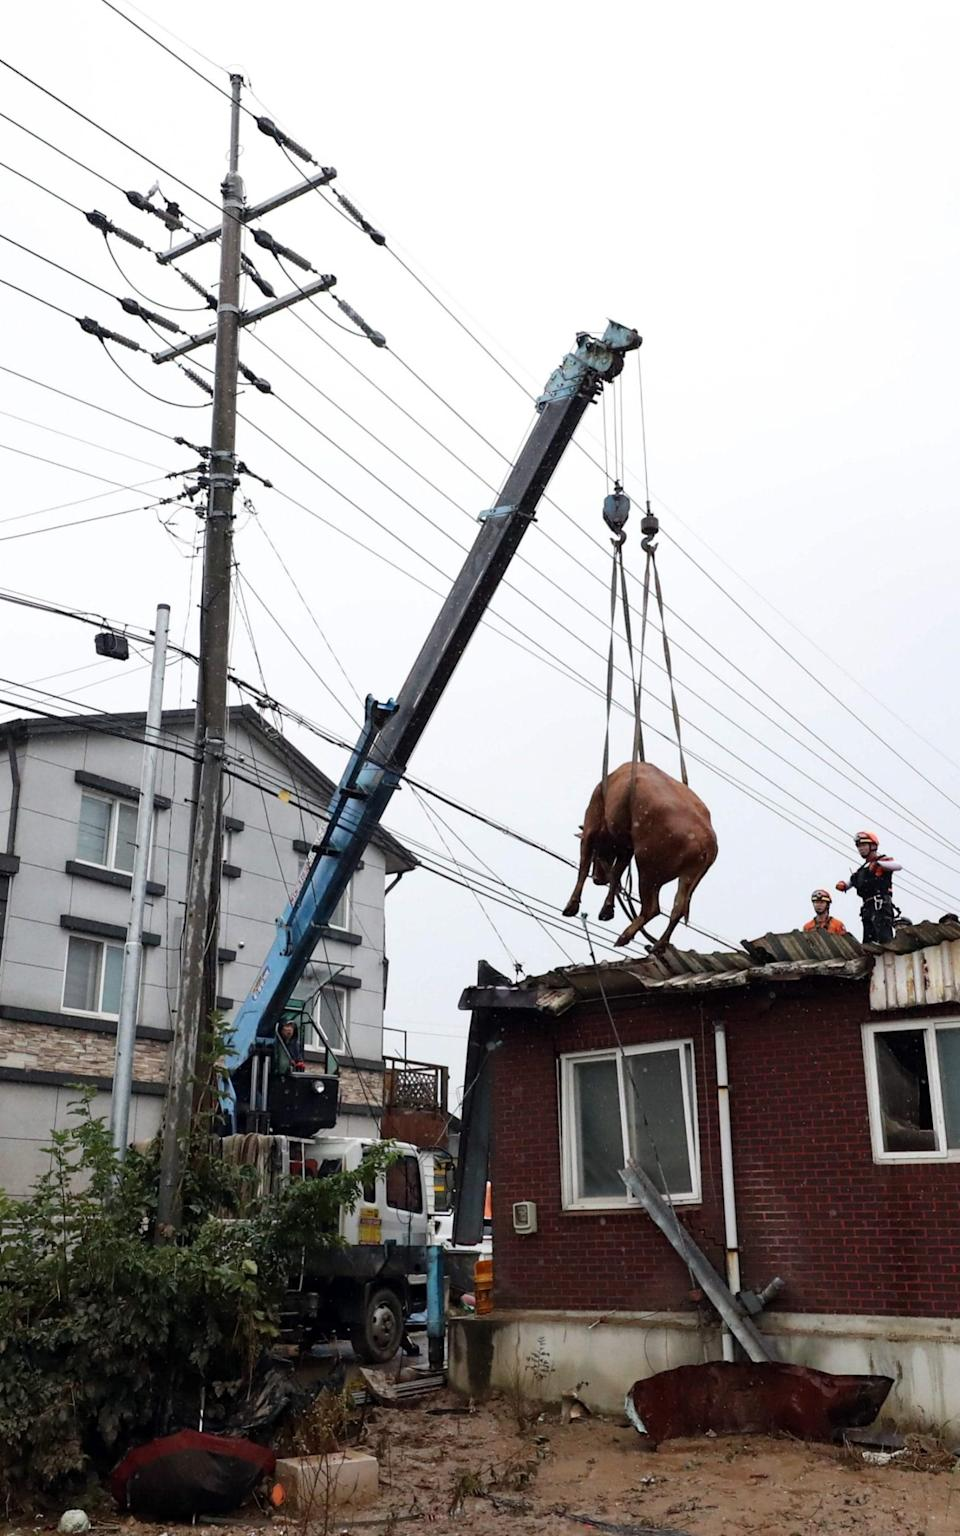 The cows were eventually lifted down by crane - STR/AFP